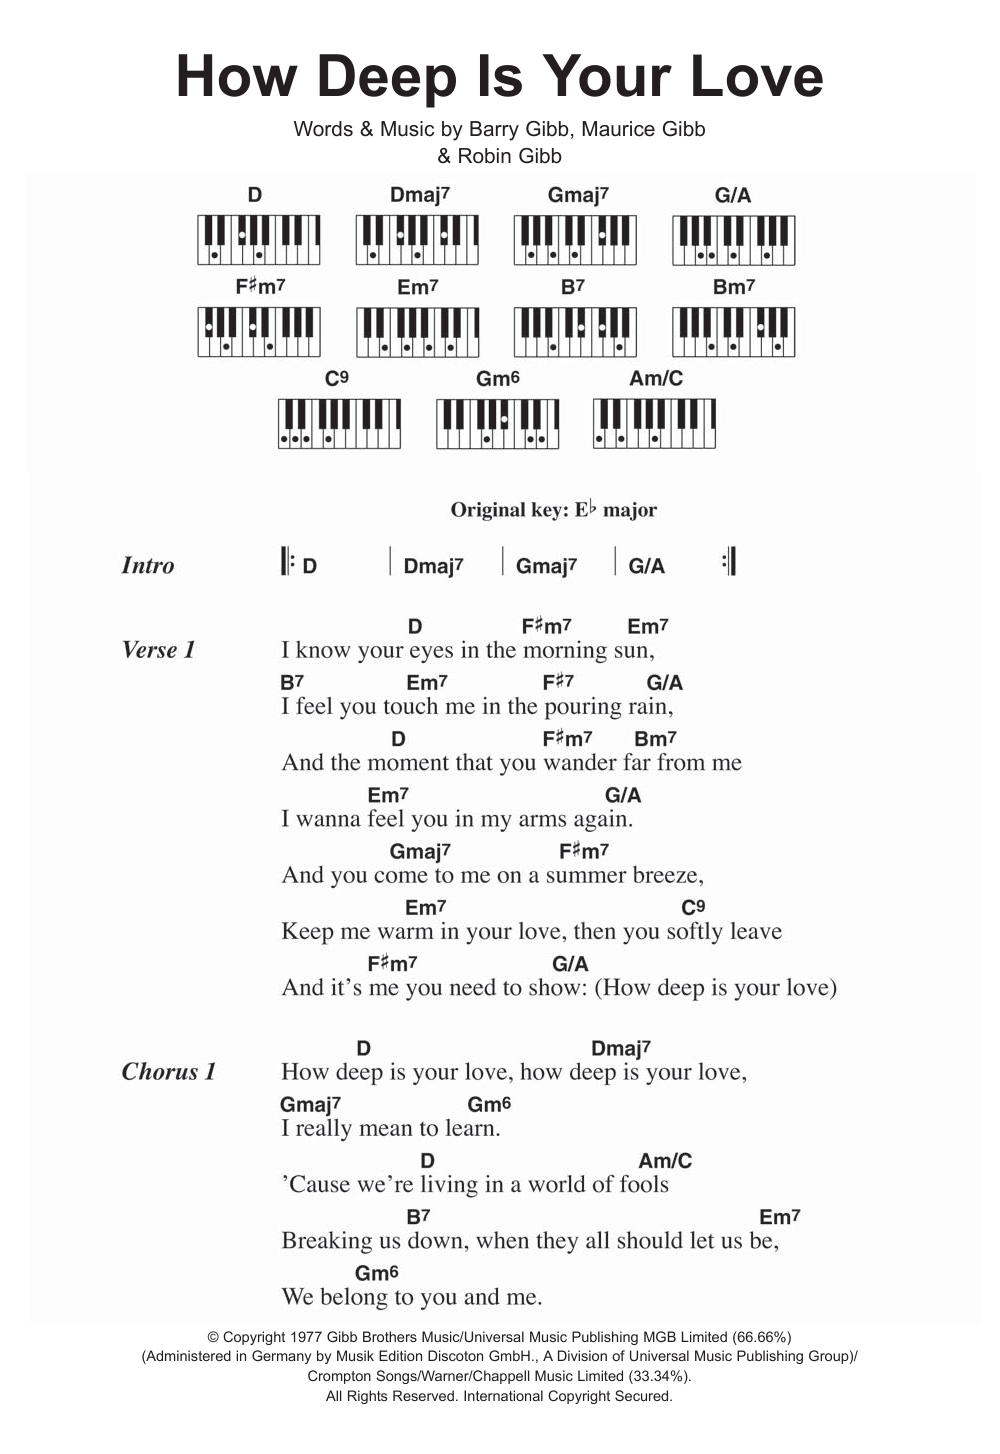 How Deep Is Your Love Sheet Music Bee Gees Lyrics Piano Chords